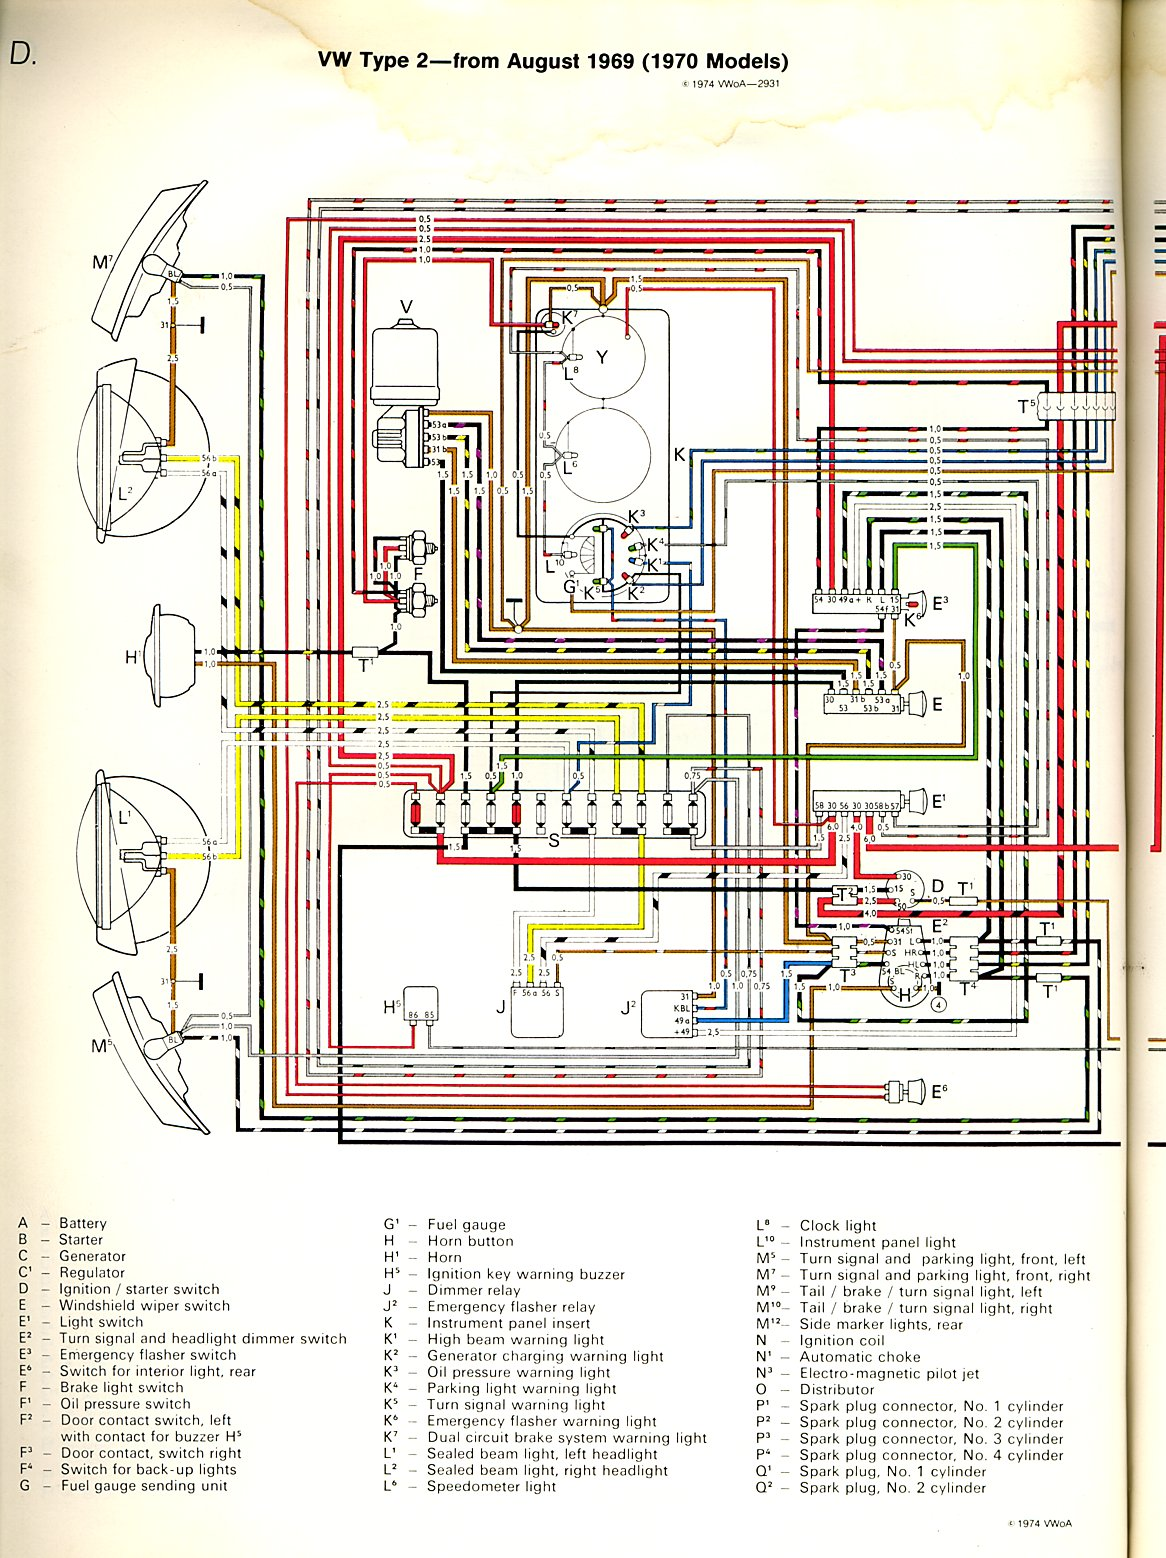 Type 2 Wiring Diagrams 65 Gto Harness Free Download Diagram Schematic